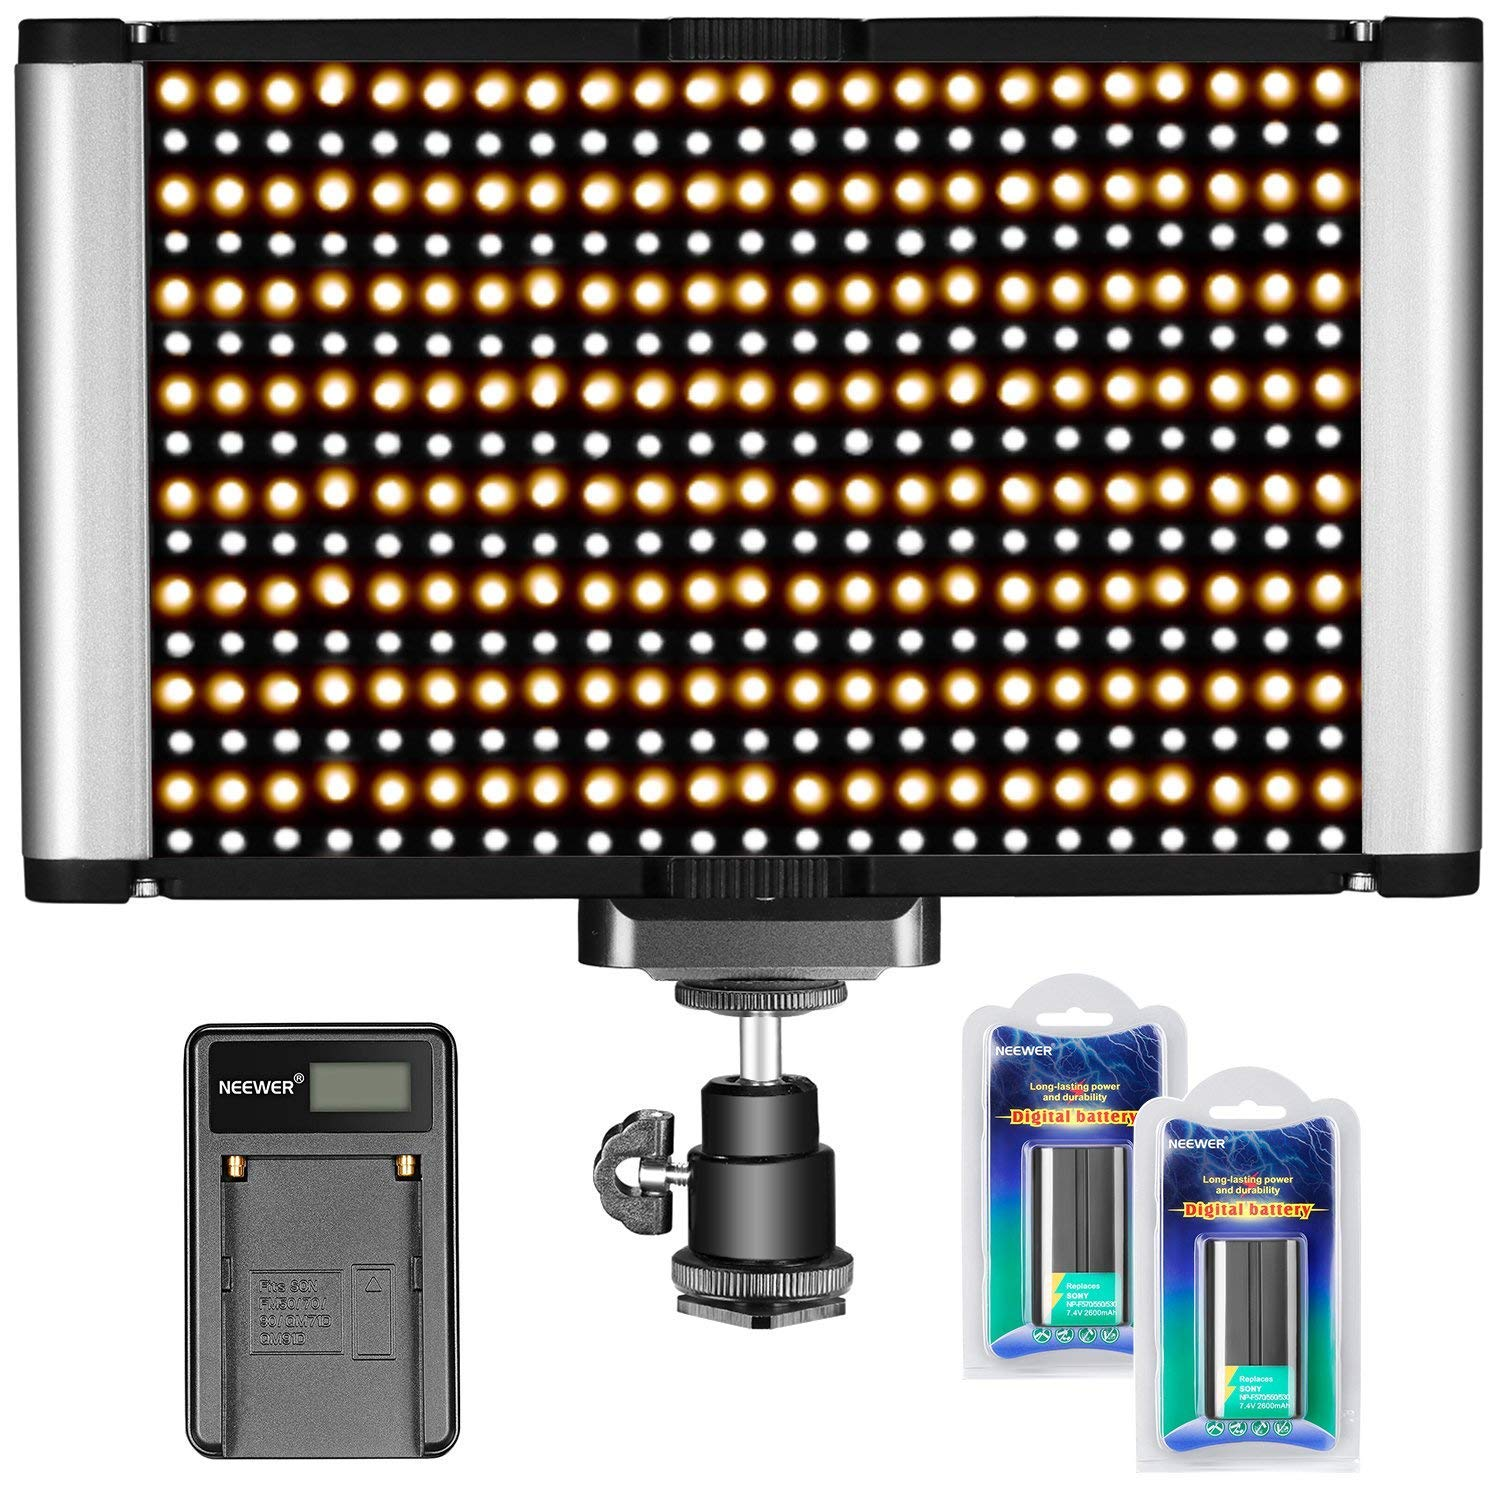 Neewer Dimmable Bi-Color 480 LED Video Light CRI 96+ 3200-5600K U Bracket, 2 Pieces Rechargeable Li-ion Battery USB Charger DSLR Camera Photo Studio Photography, YouTube Video Shooting 90090677@@##1